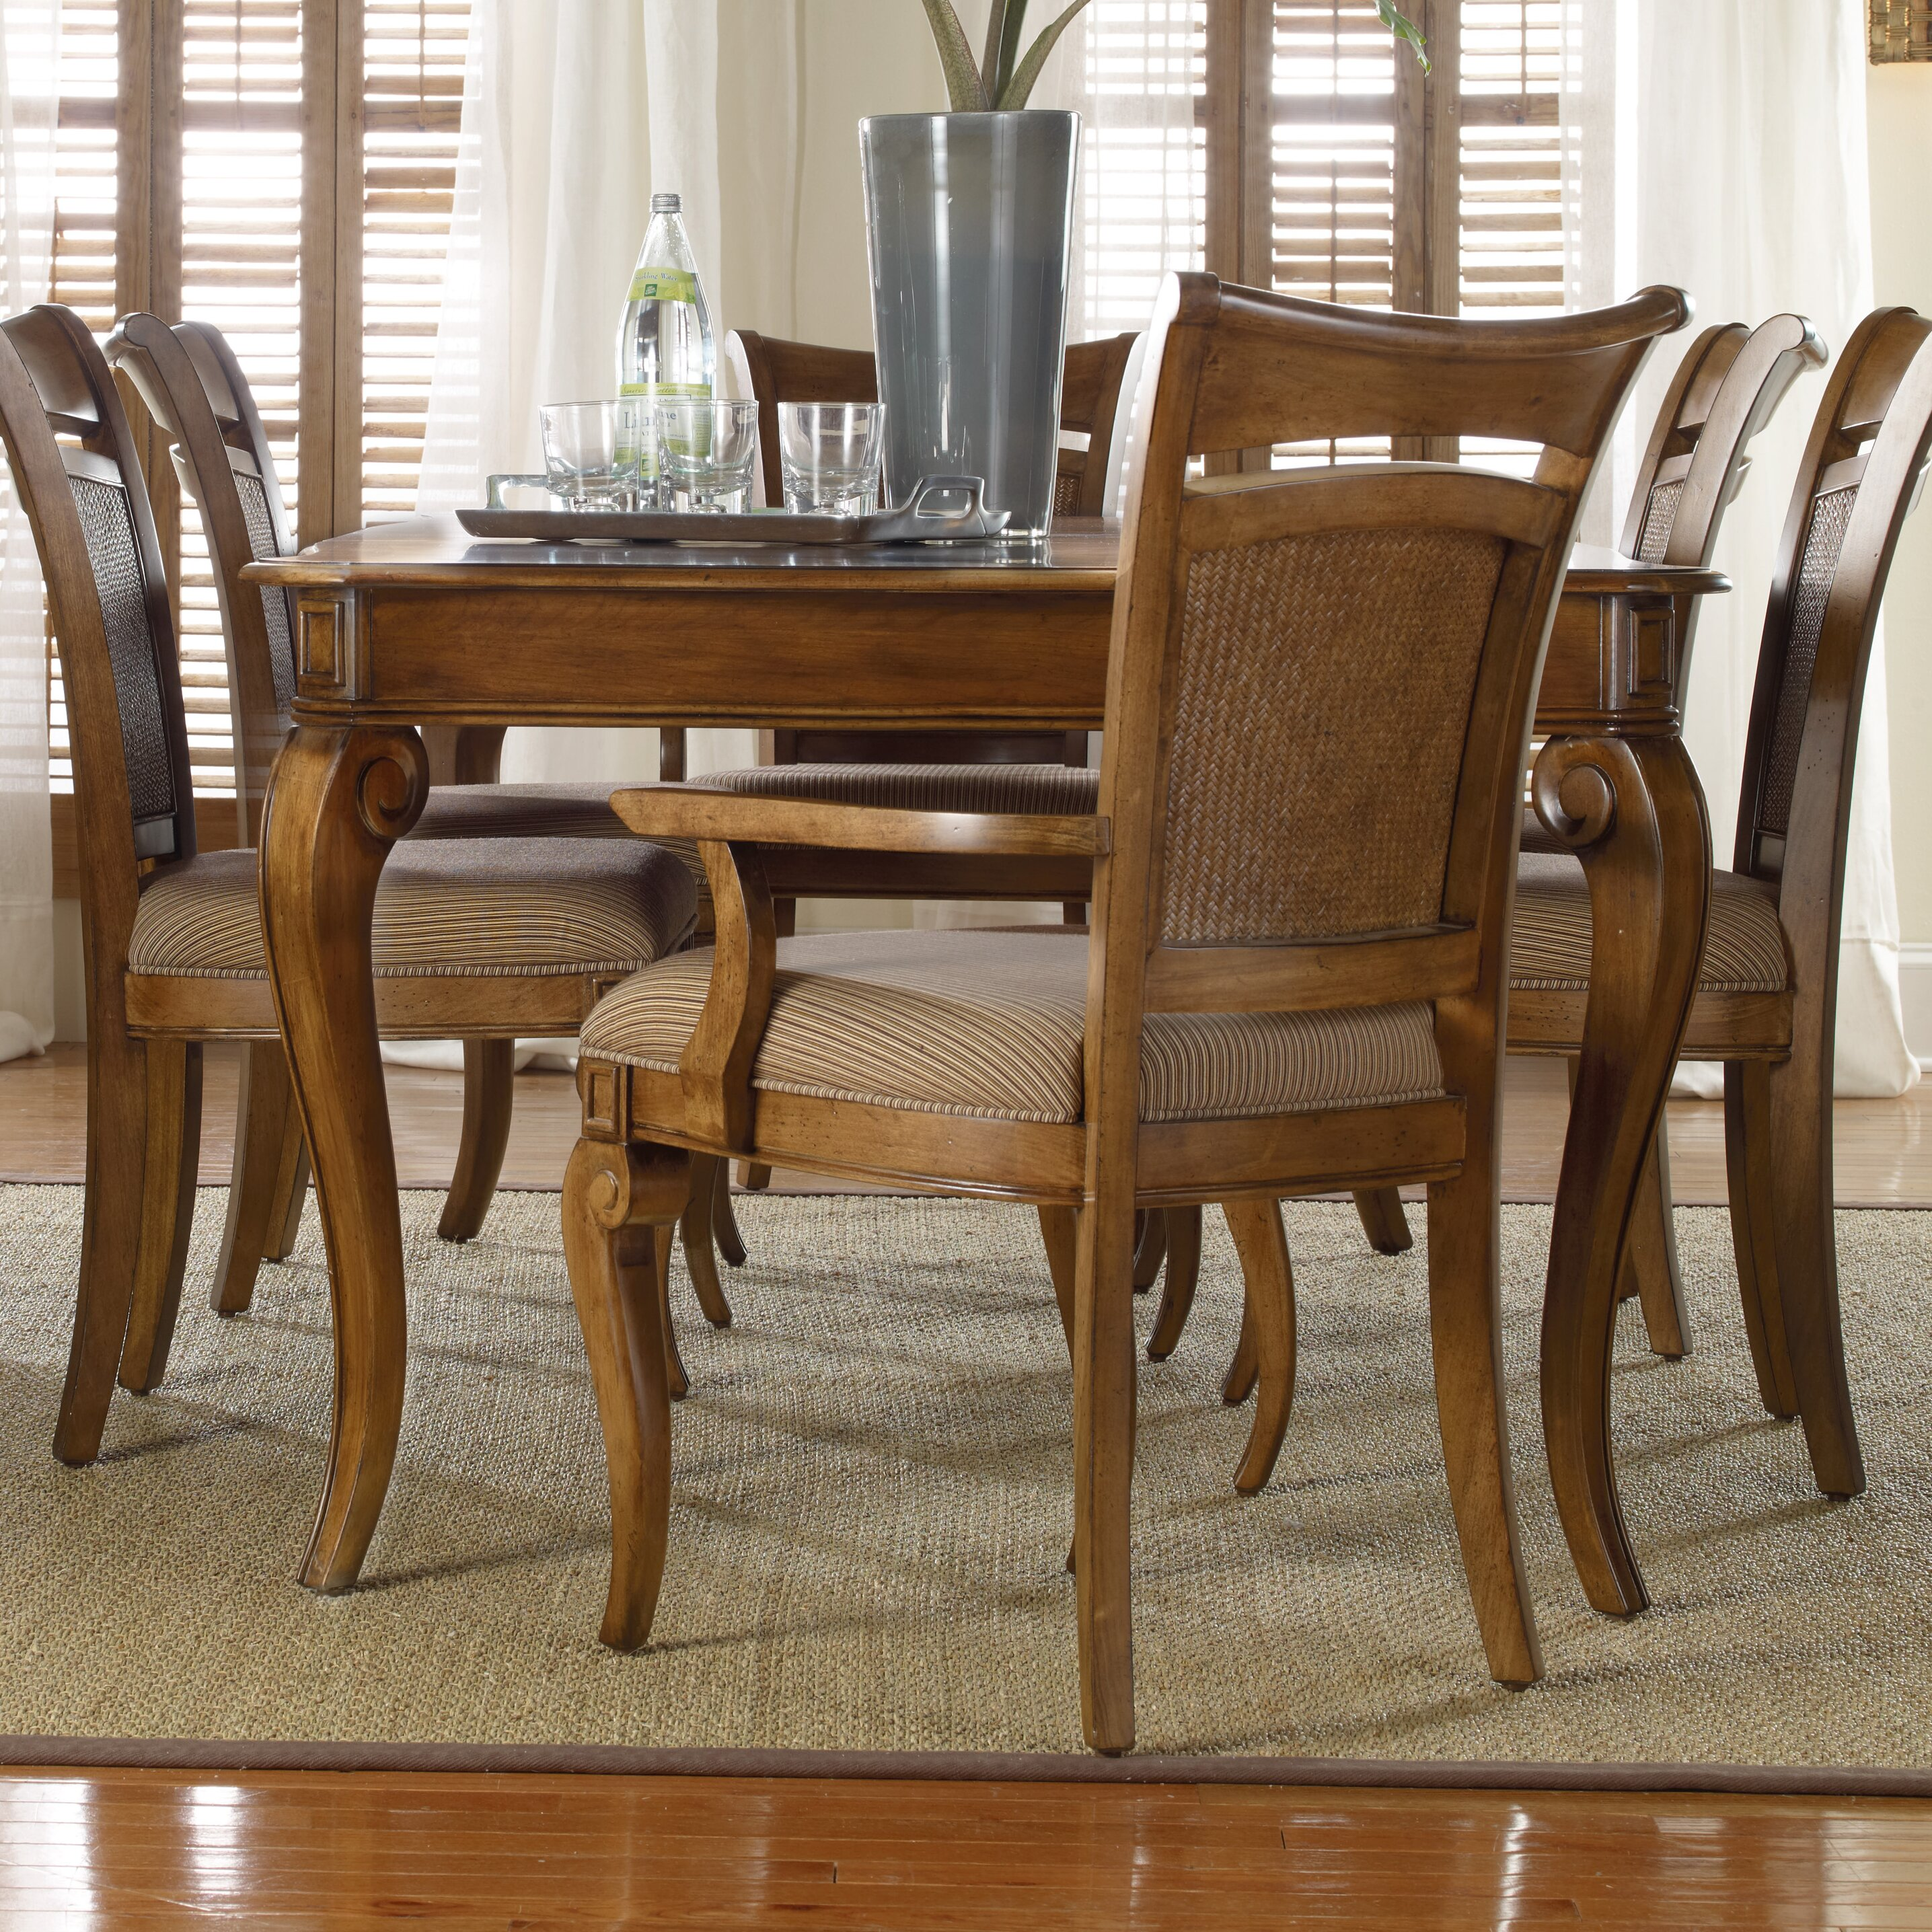 Hooker furniture windward dining table reviews wayfair